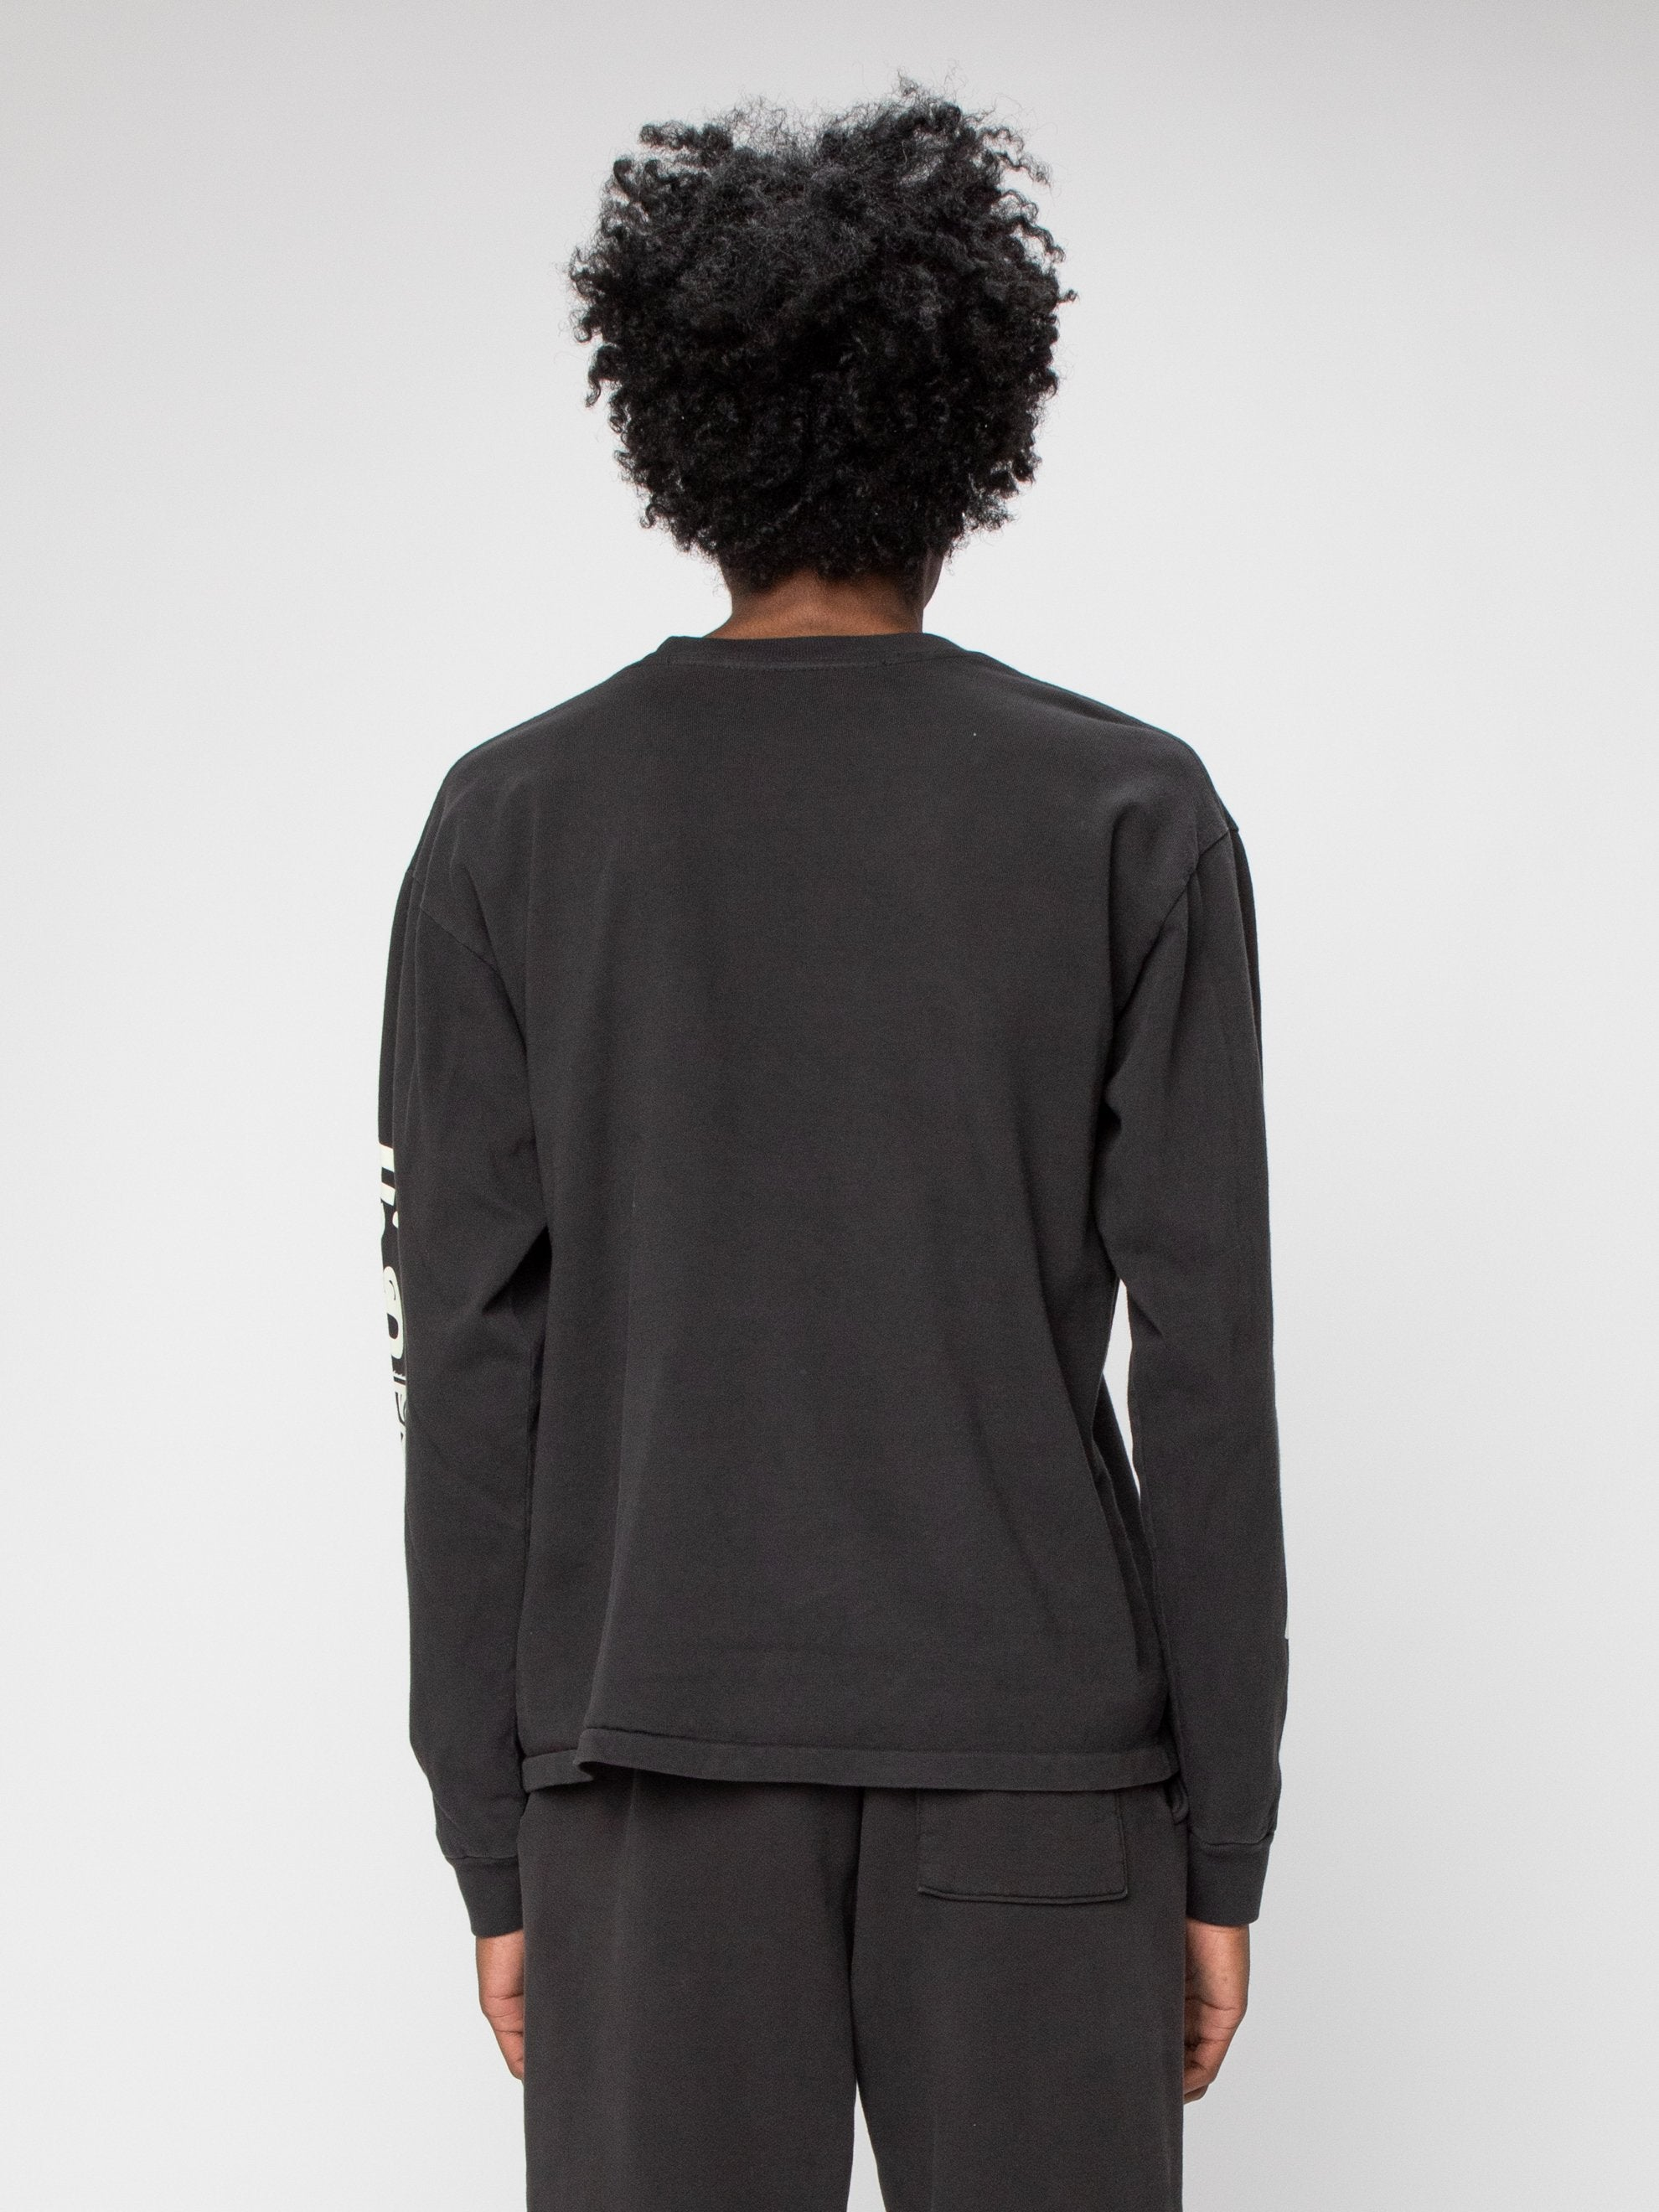 Black Fairfax Heavyweight L/S Shirt 6